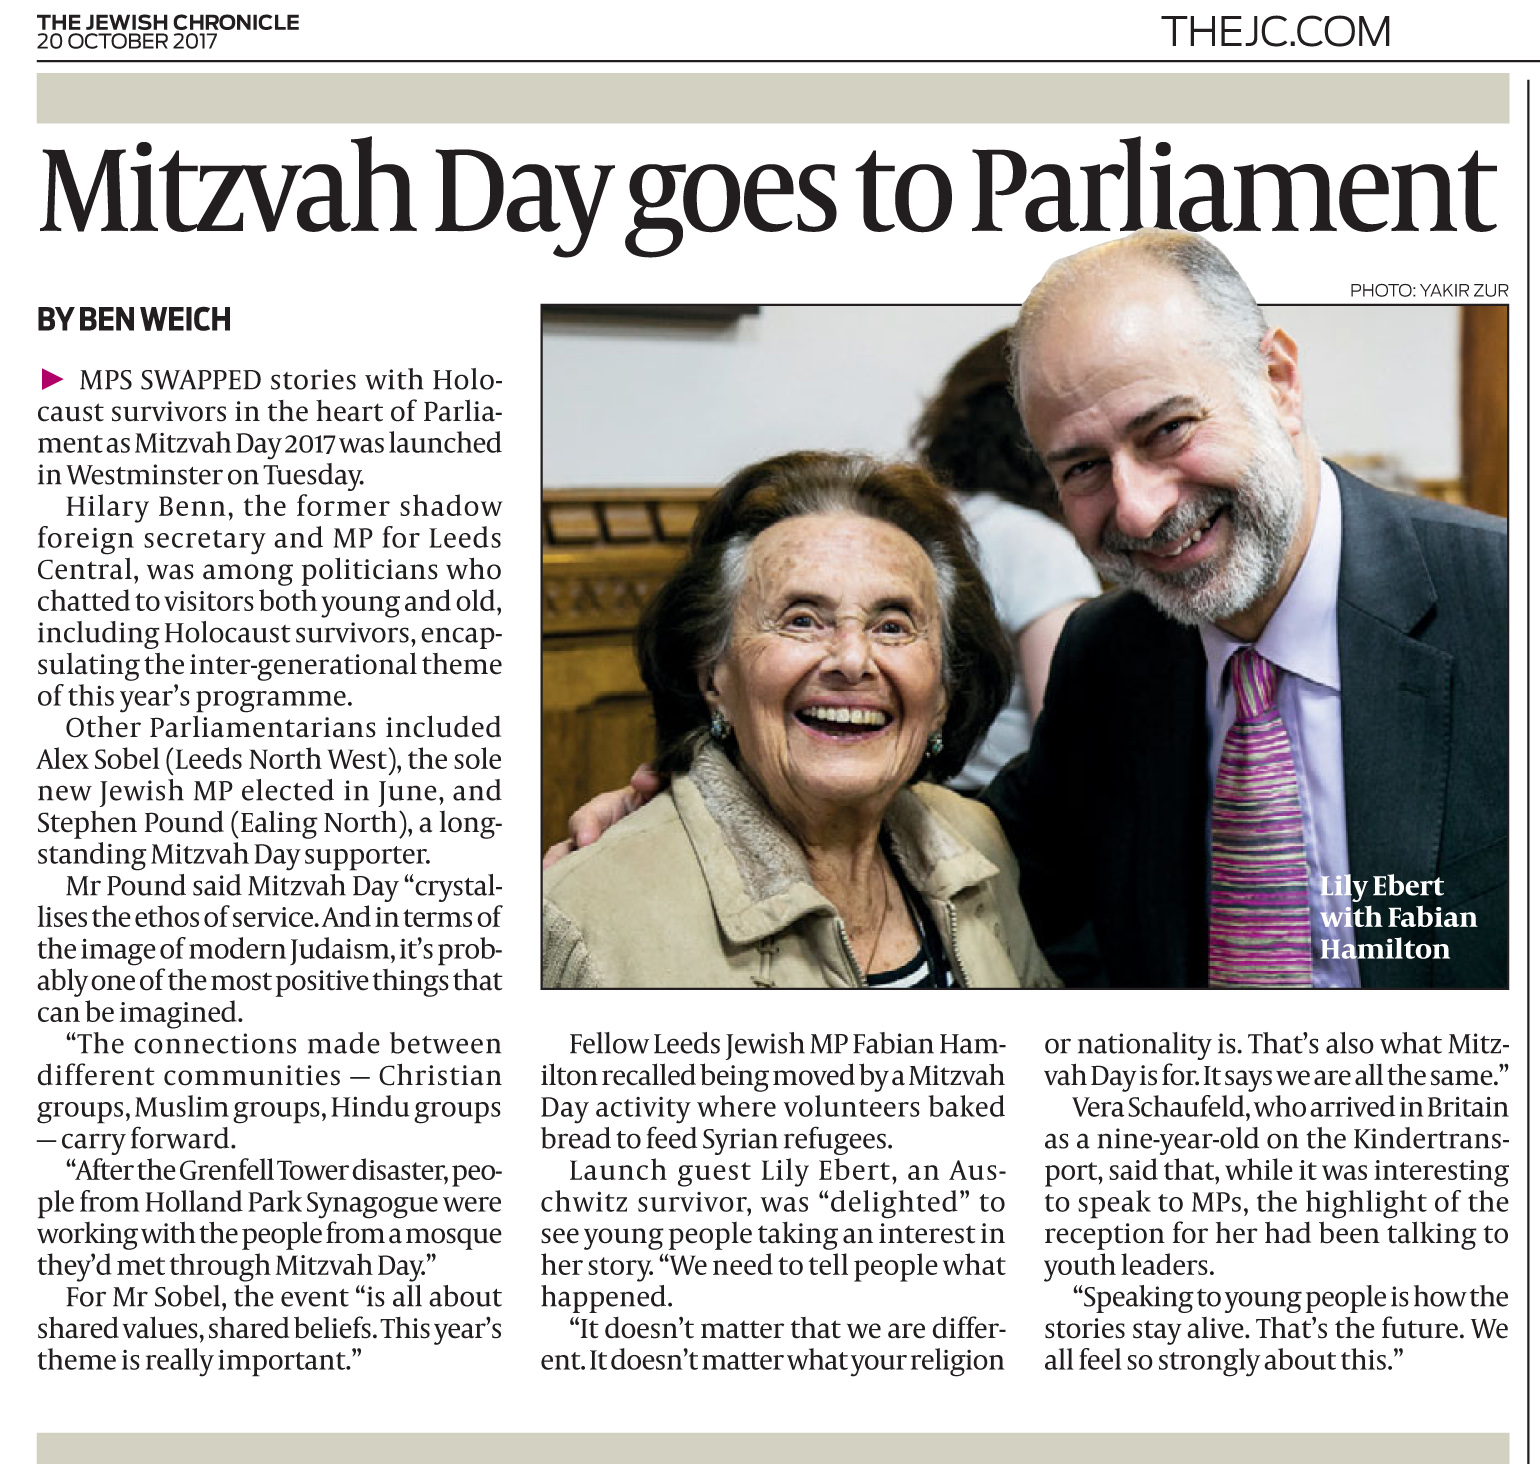 Parliamentary tea party in the Jewish Chronicle